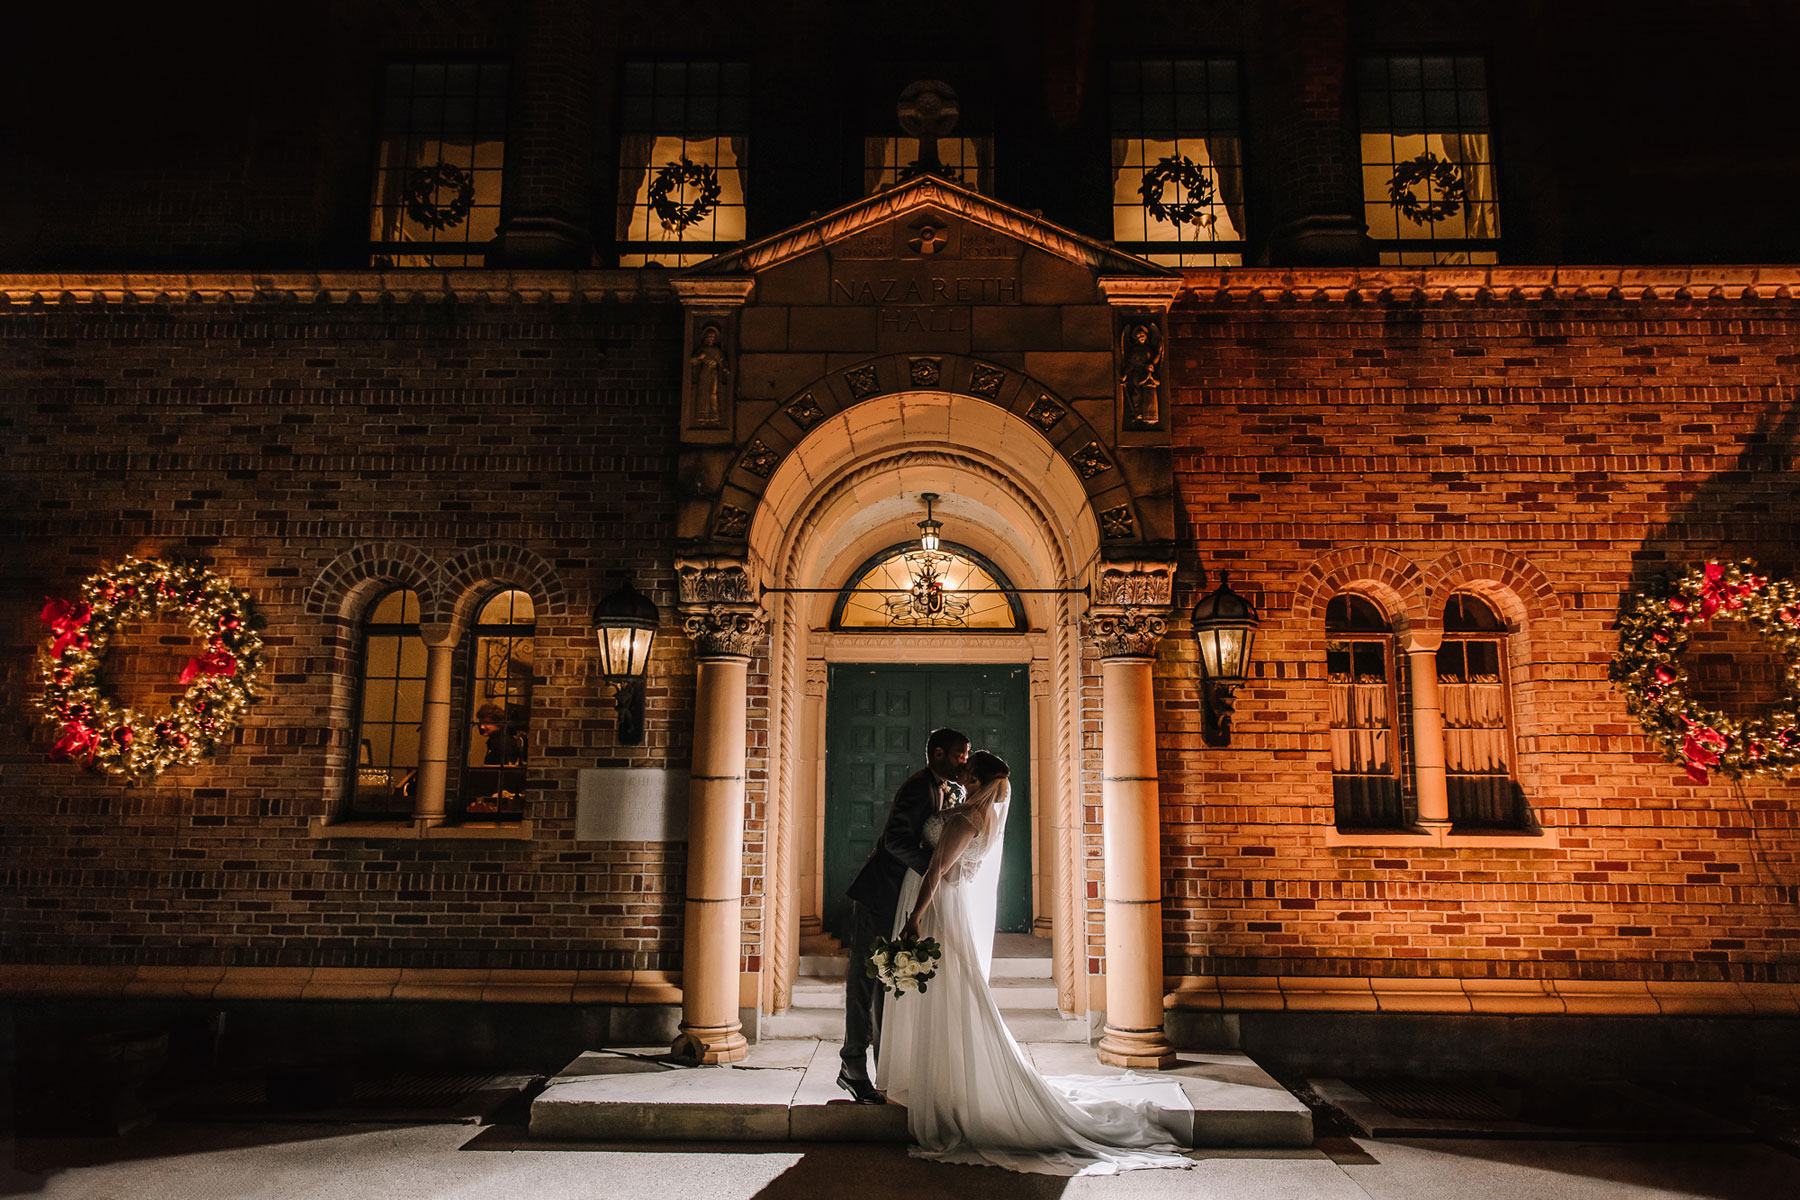 Miranda + Nick - A winter wedding with a black and white color palette set in the beautiful, historic Nazareth Hall venue.